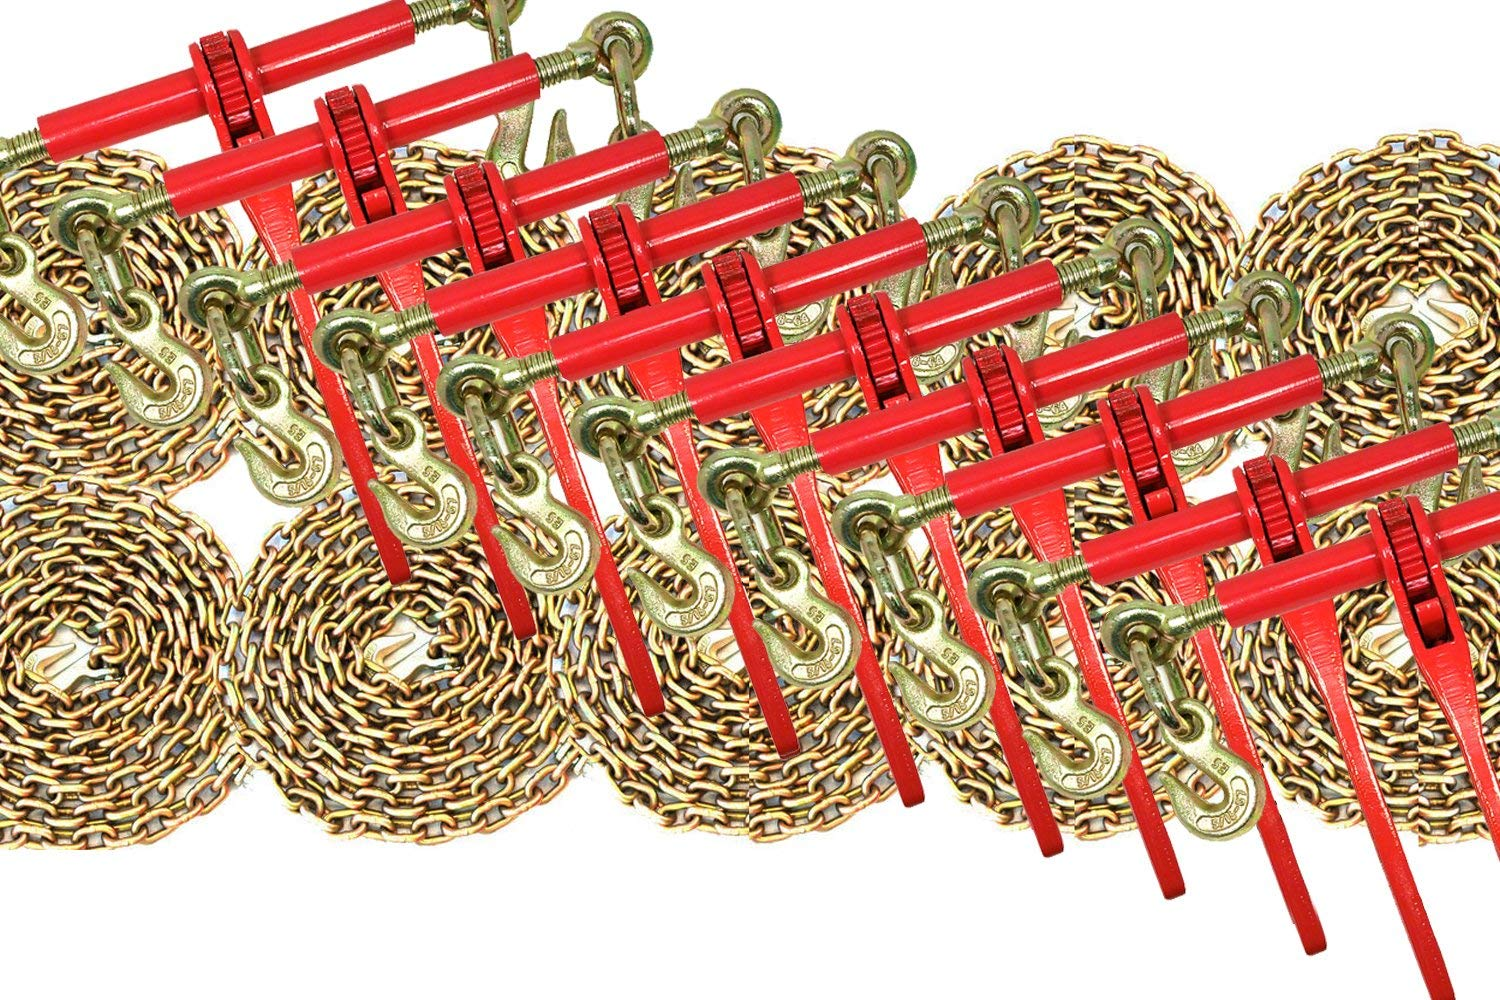 3/8 Transport Hauling Load Package - 10x Ratchet Binders - 10x 10' Foot Chains